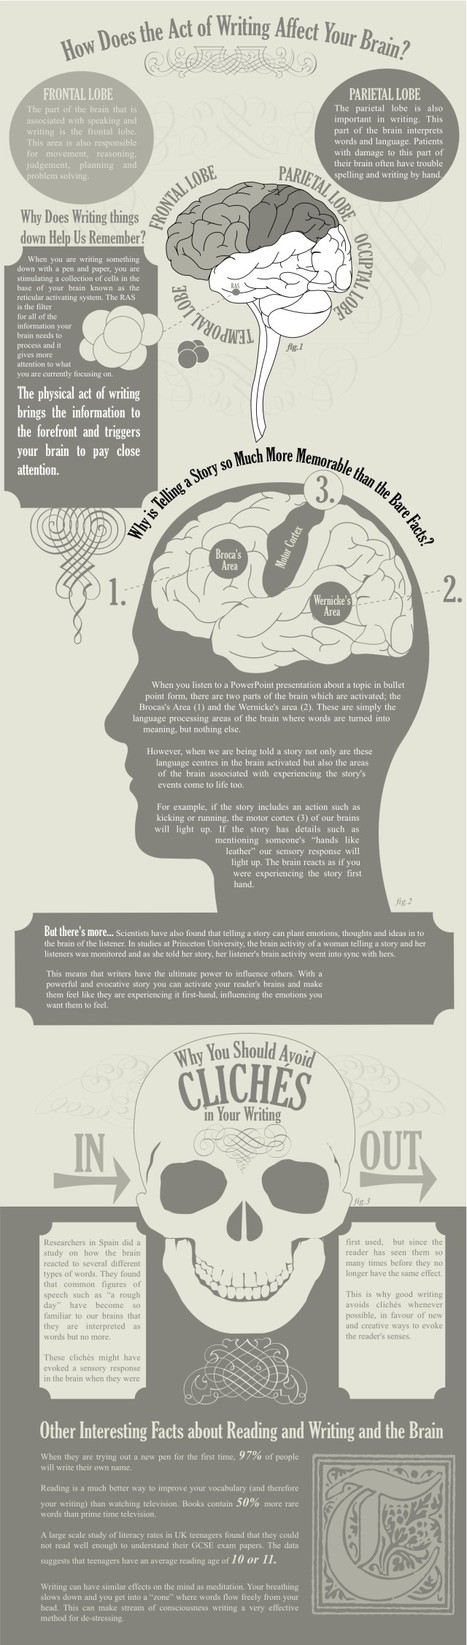 How Does Writing Affect Your Brain? [infographic] | Feed the Writer | Scoop.it